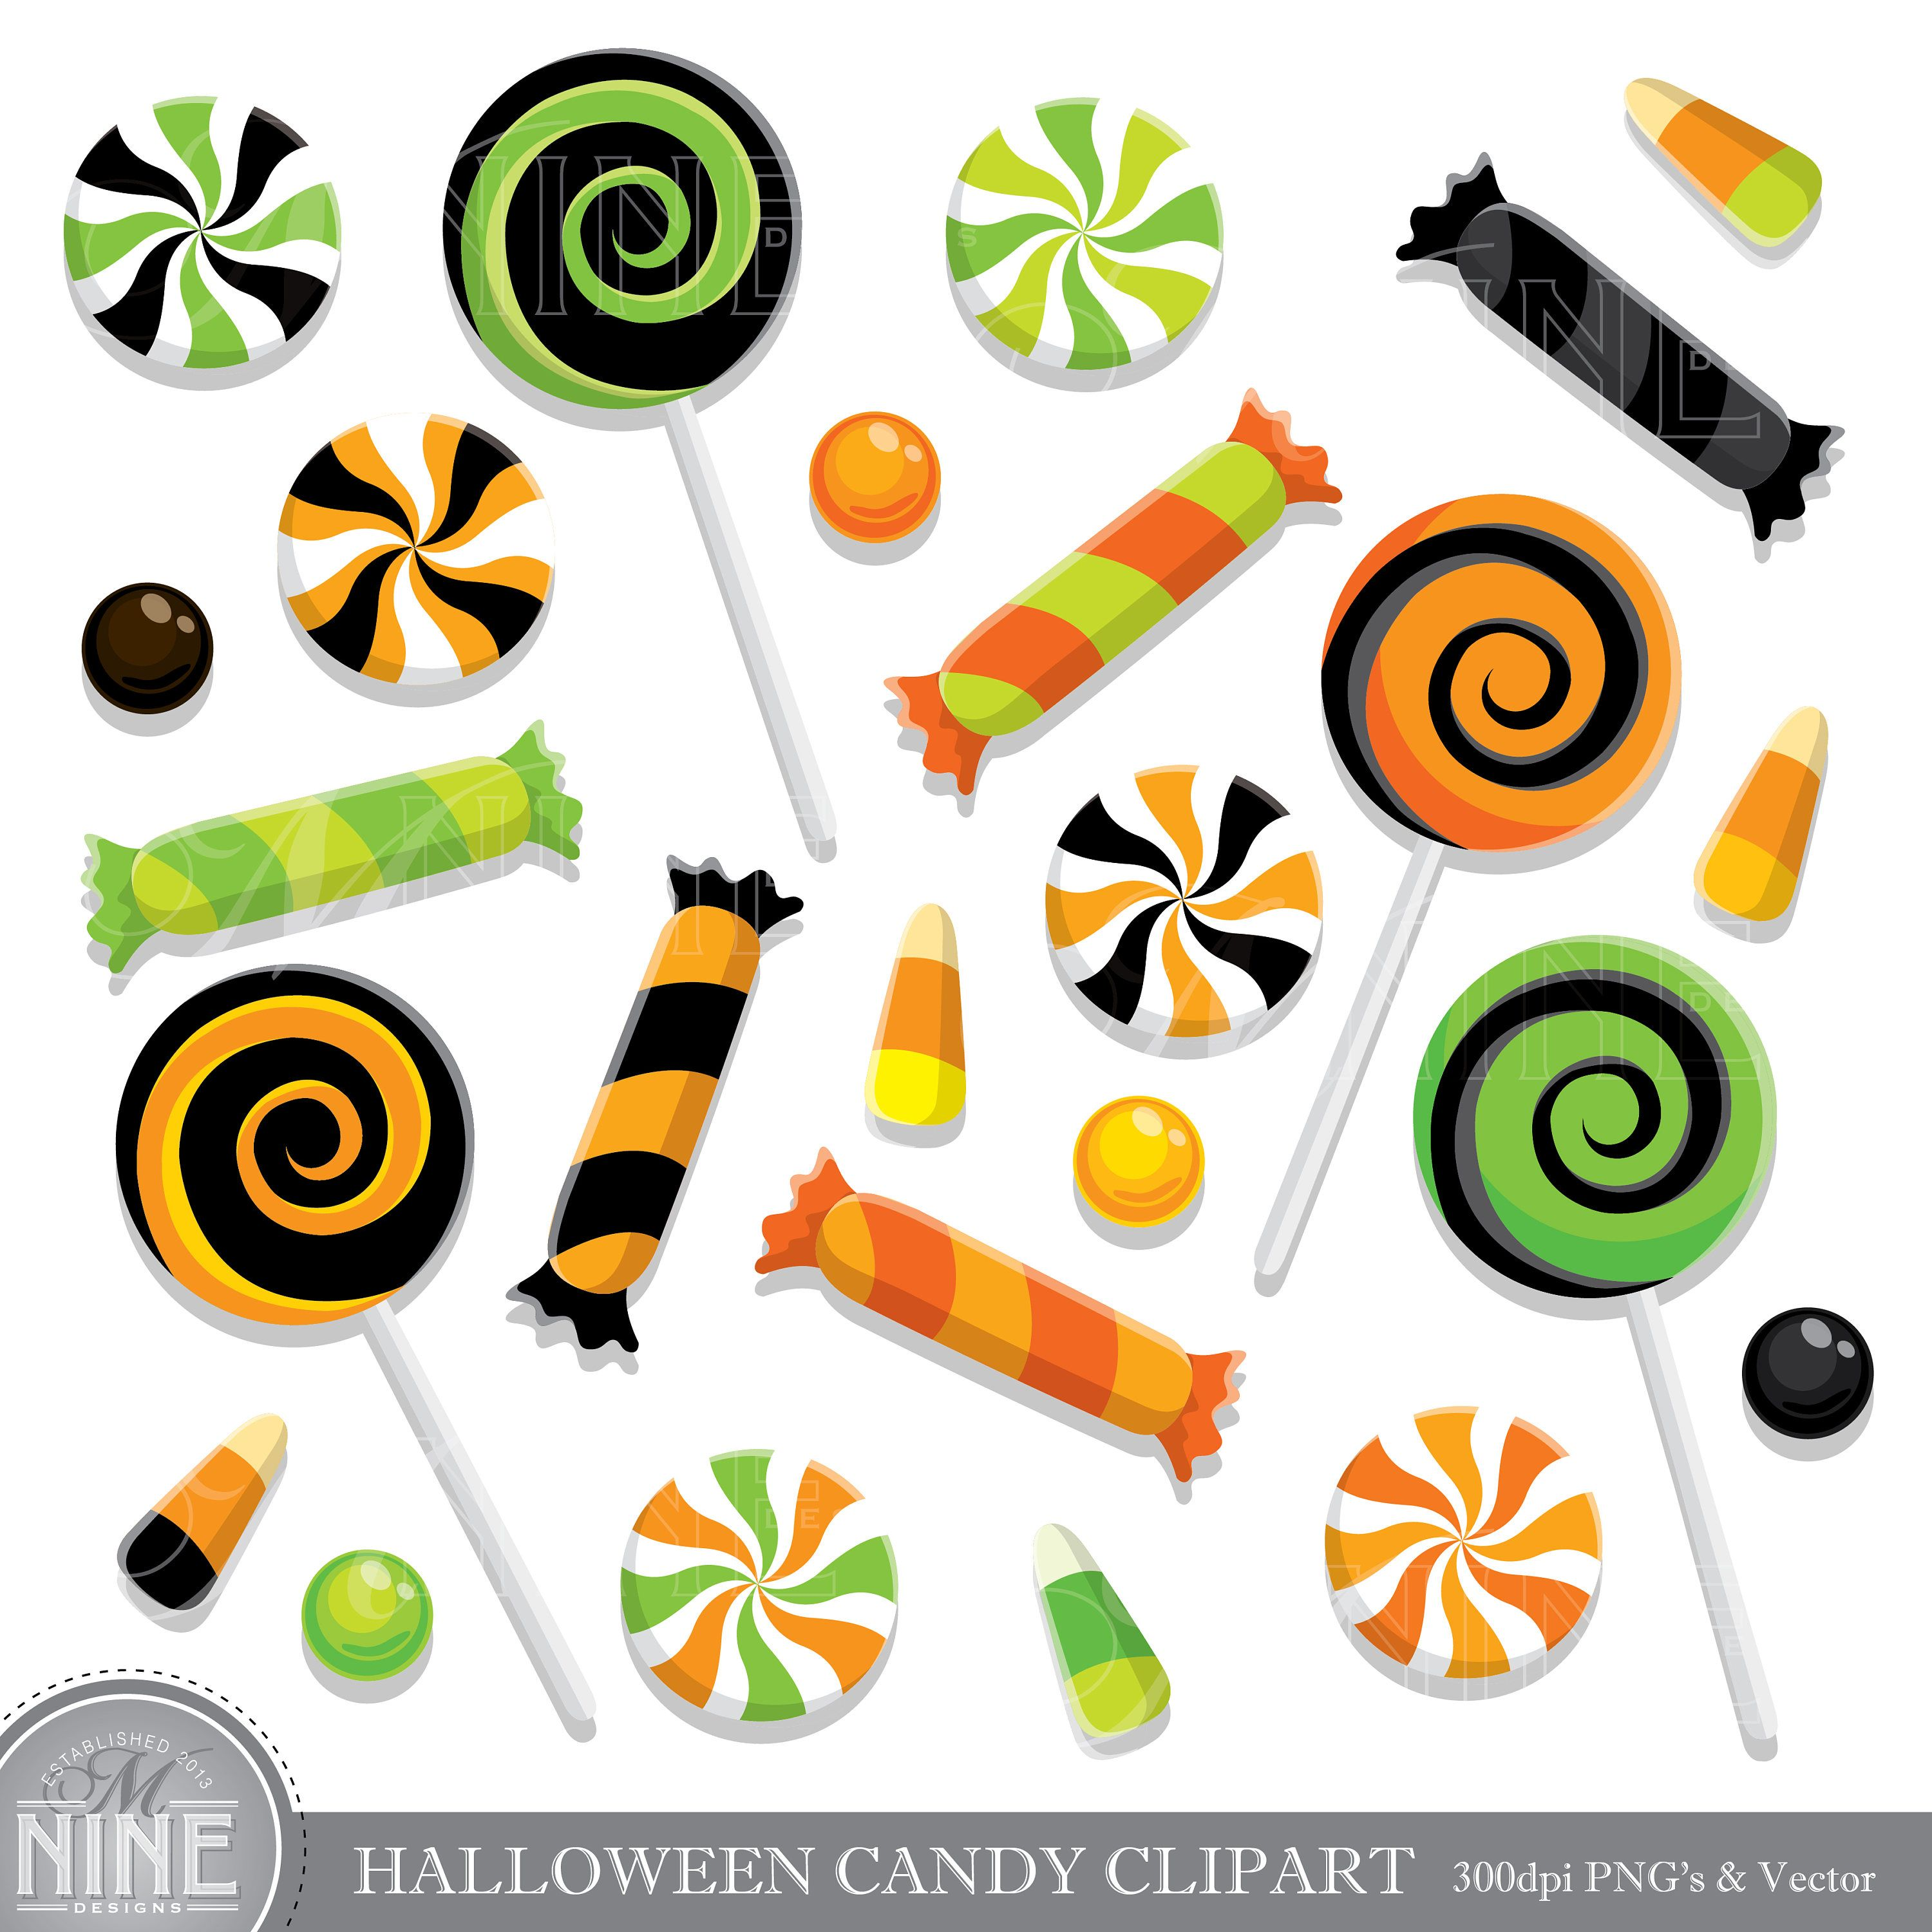 HALLOWEEN CANDY Clip Art / Halloween CANDY Clipart Downloads / Candy.